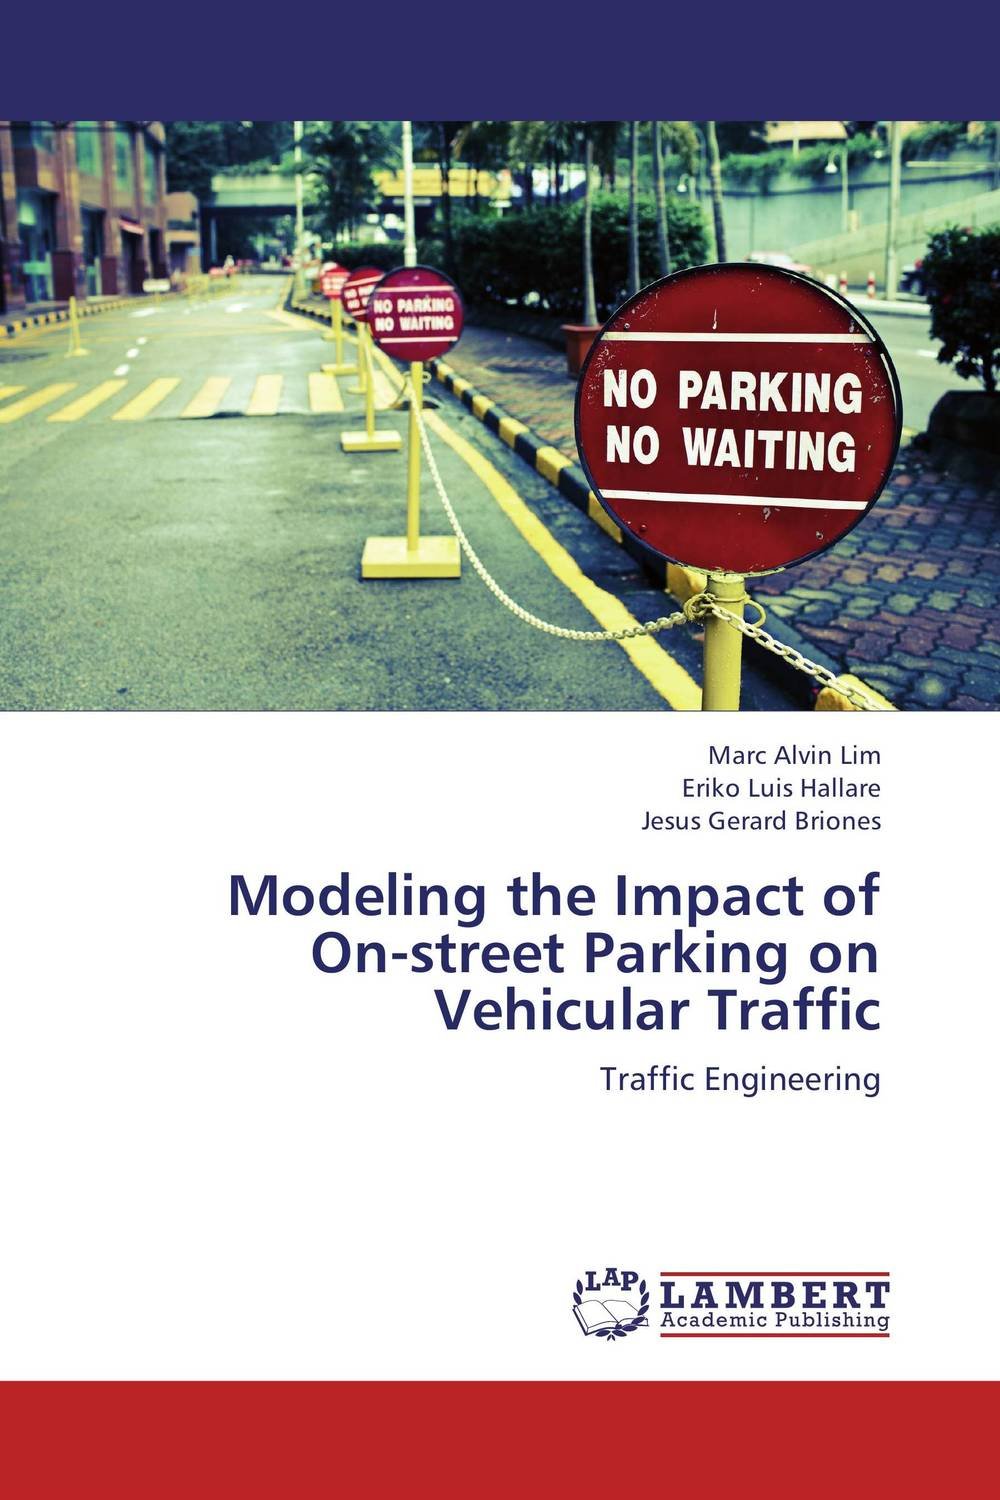 Modeling the Impact of On-street Parking on Vehicular Traffic highsmith p found in the street